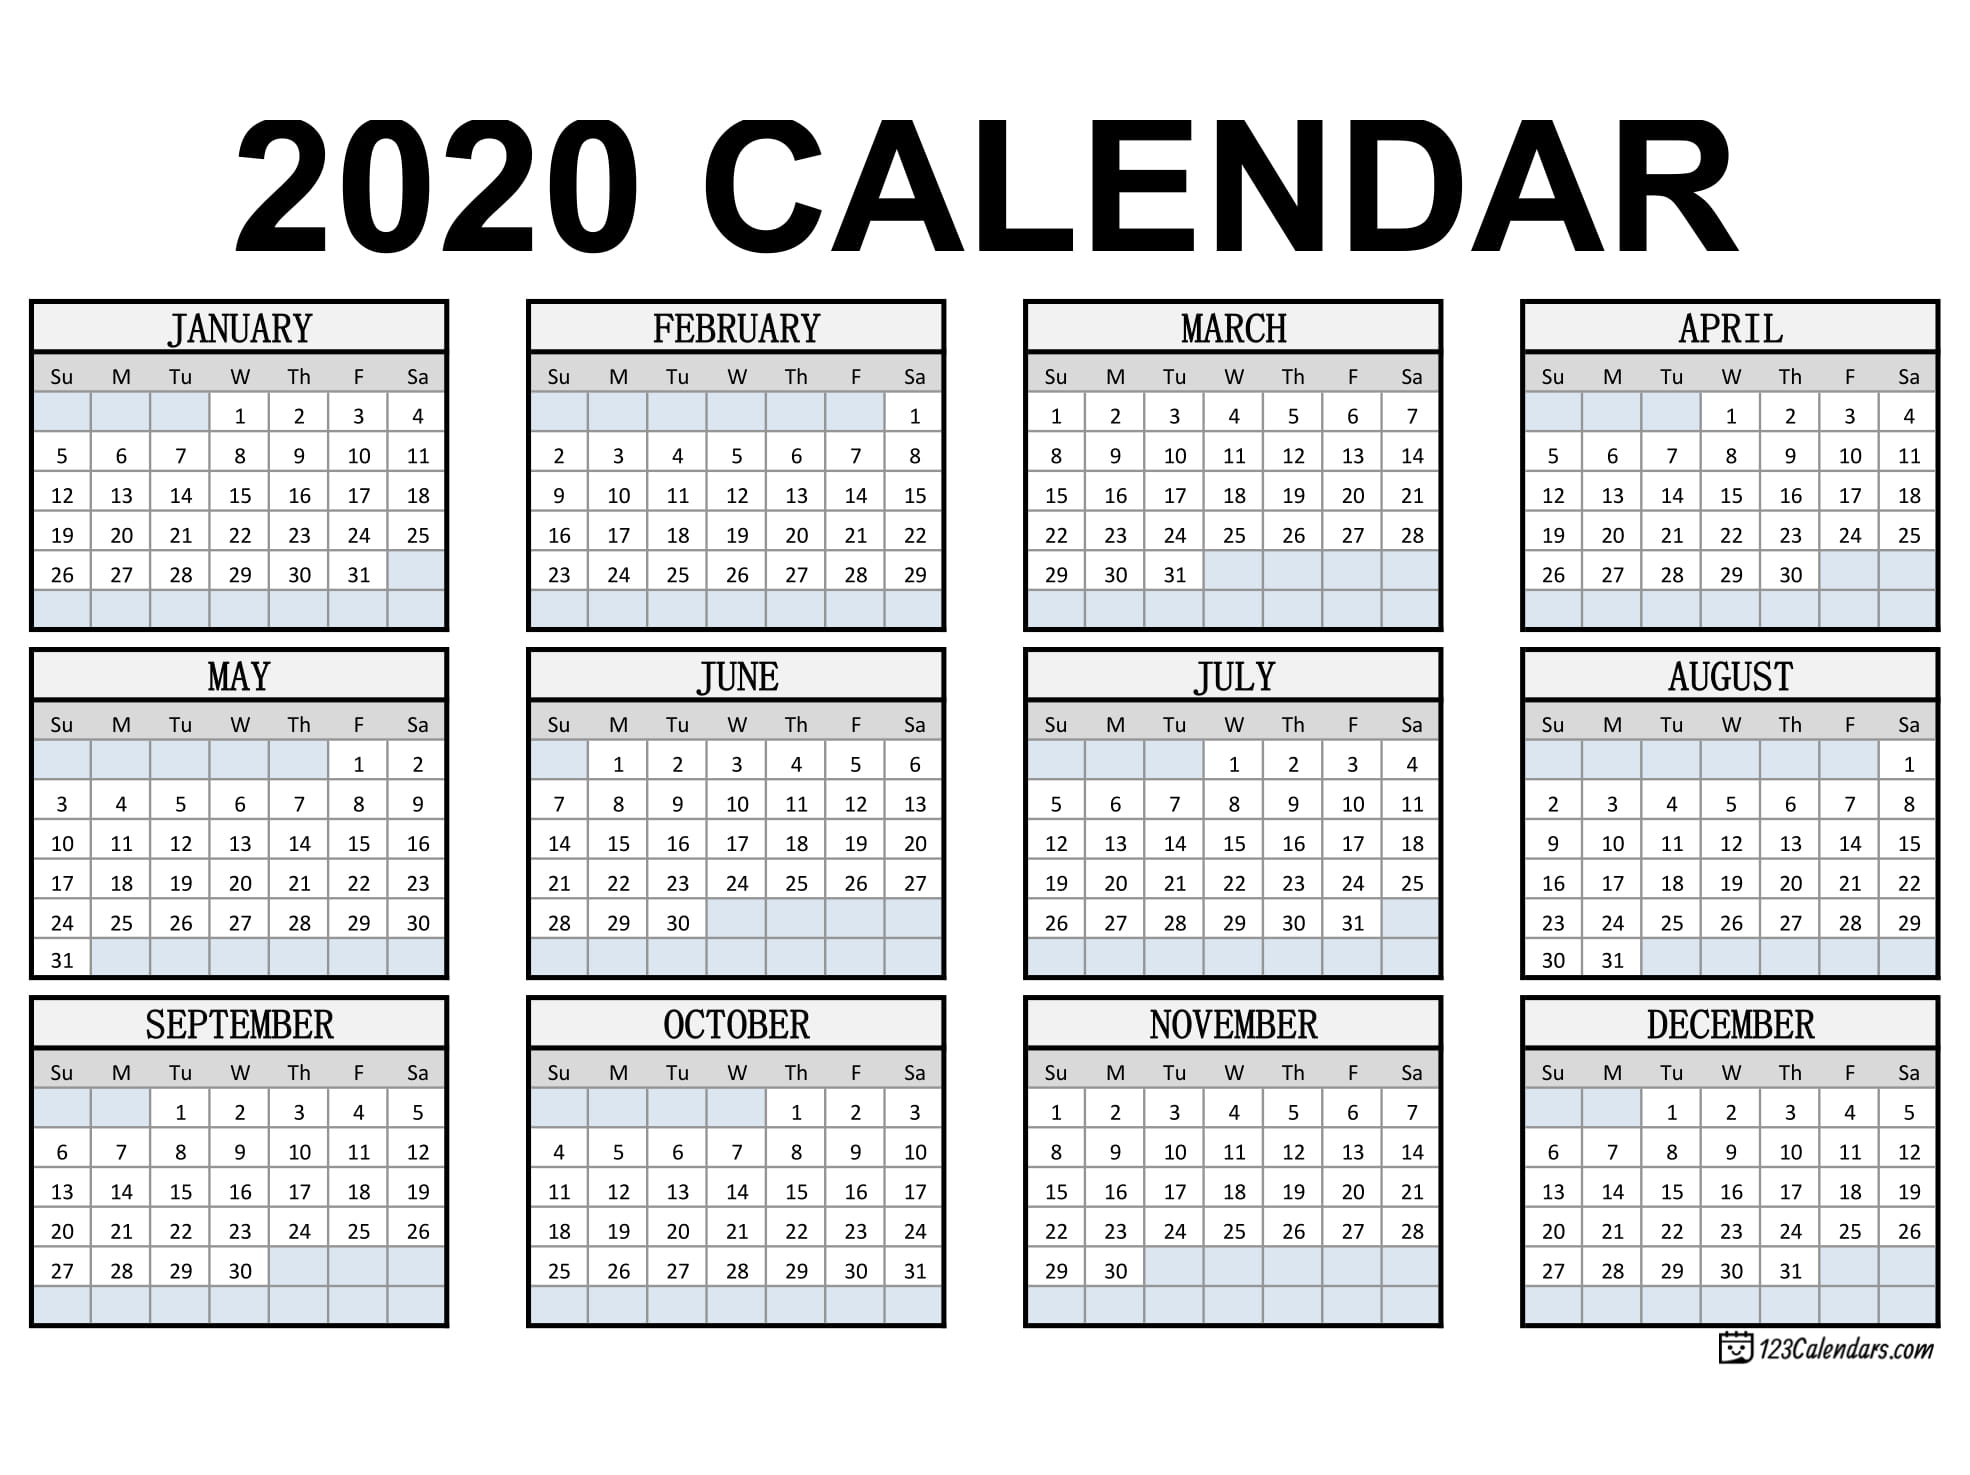 Free Printable 2020 Calendar | 123Calendars inside Printable Yearly Calendar With Boxes